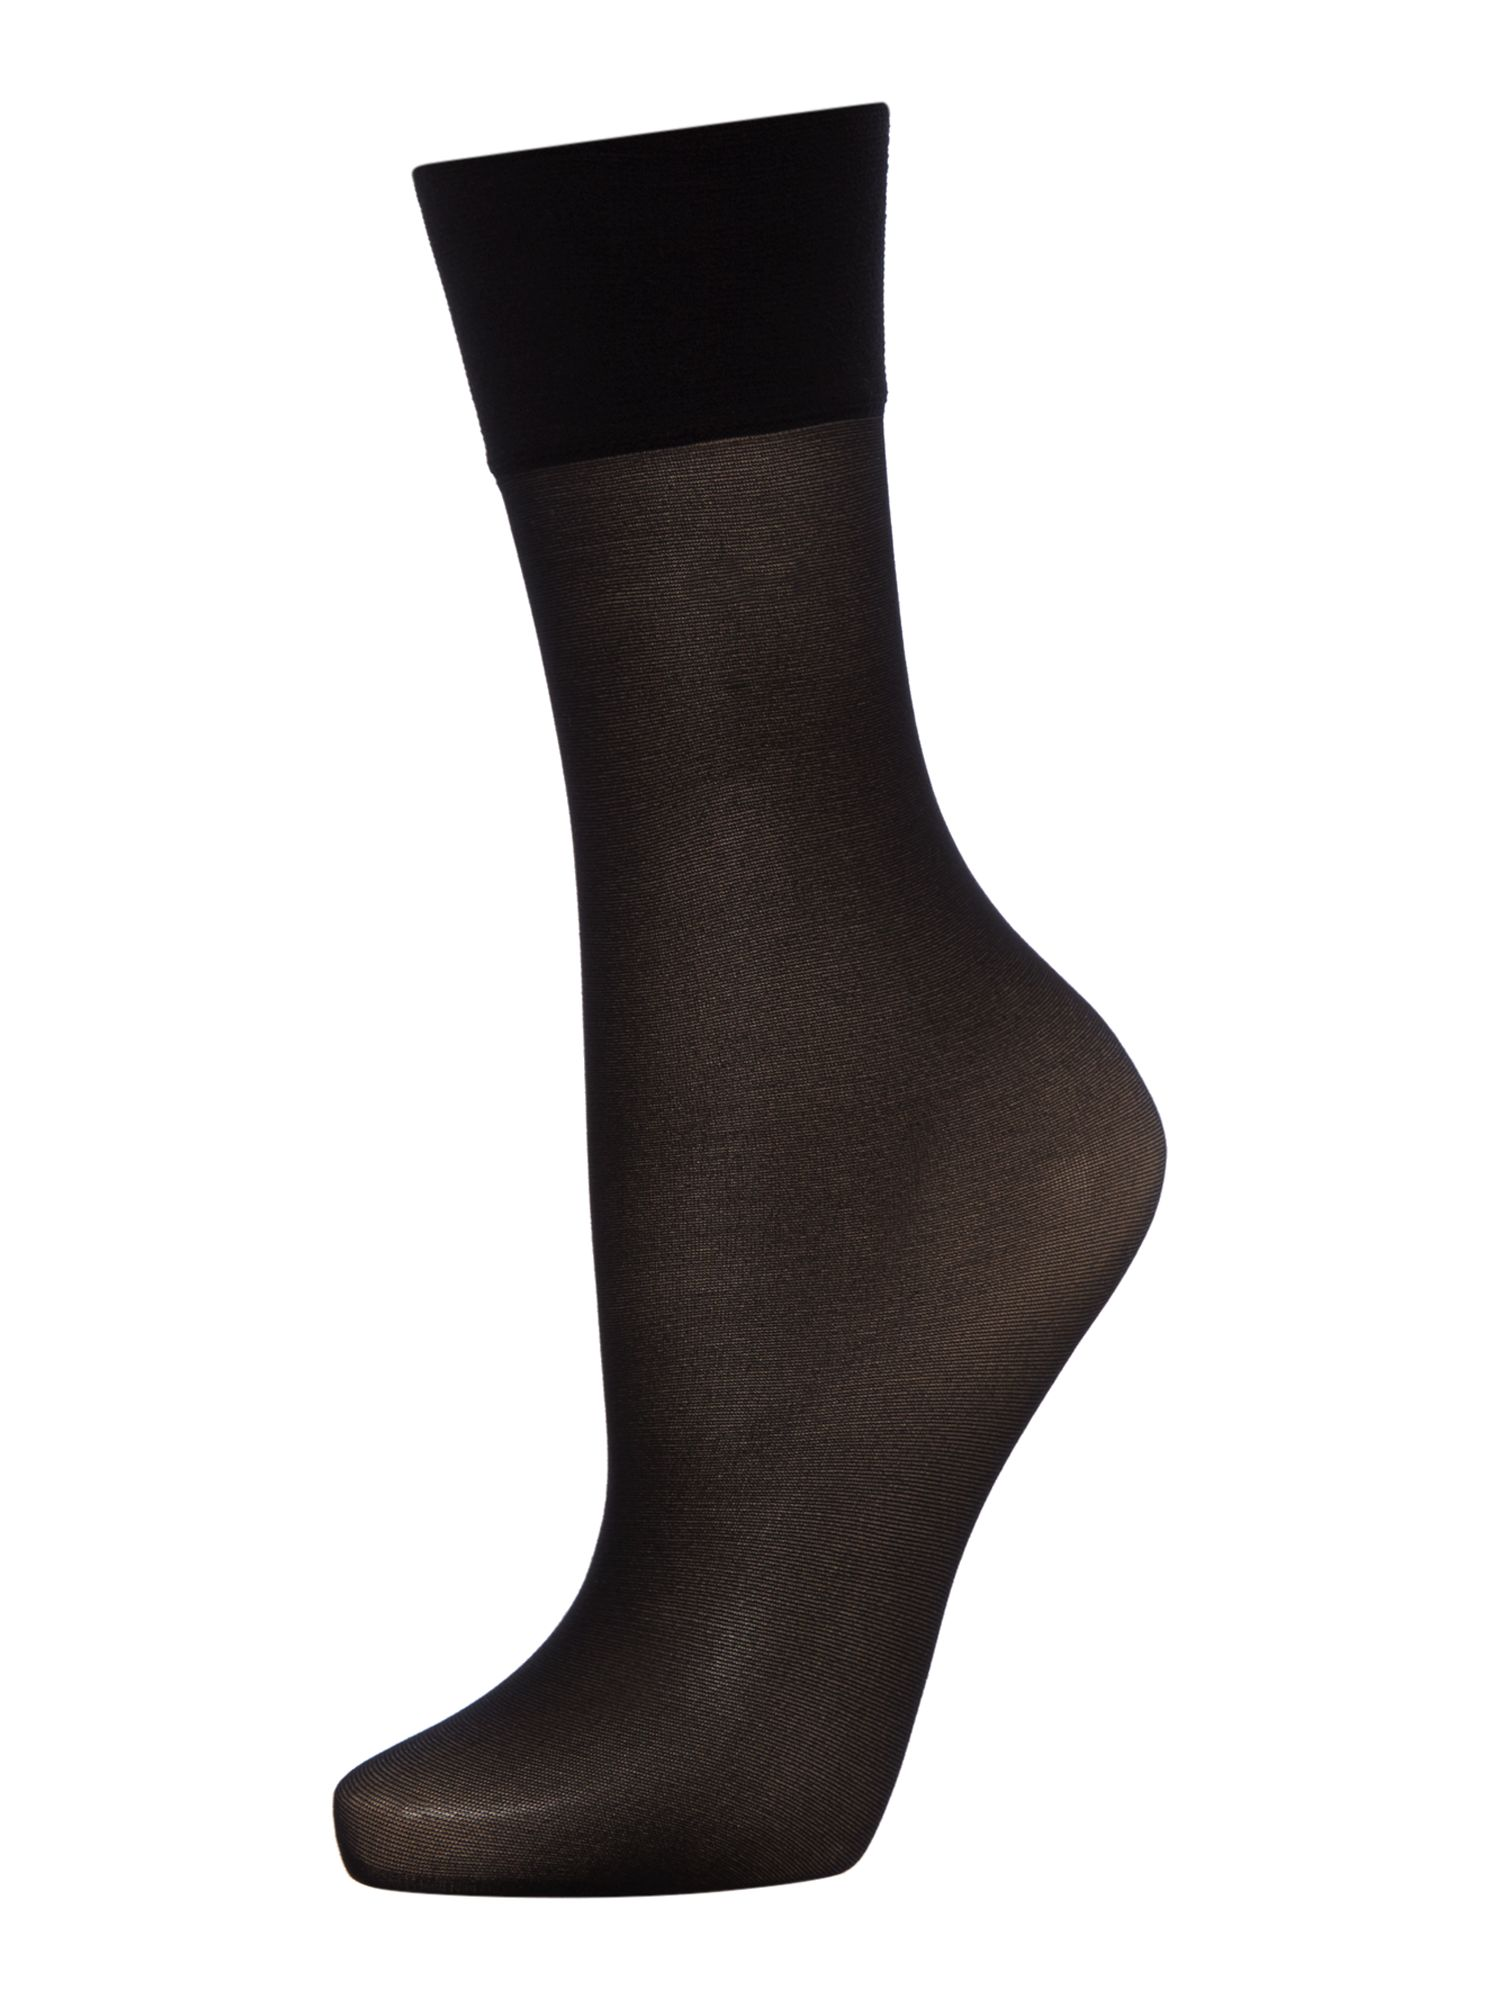 Charnos 2 Per Packet Sheer Ankle Socks Black